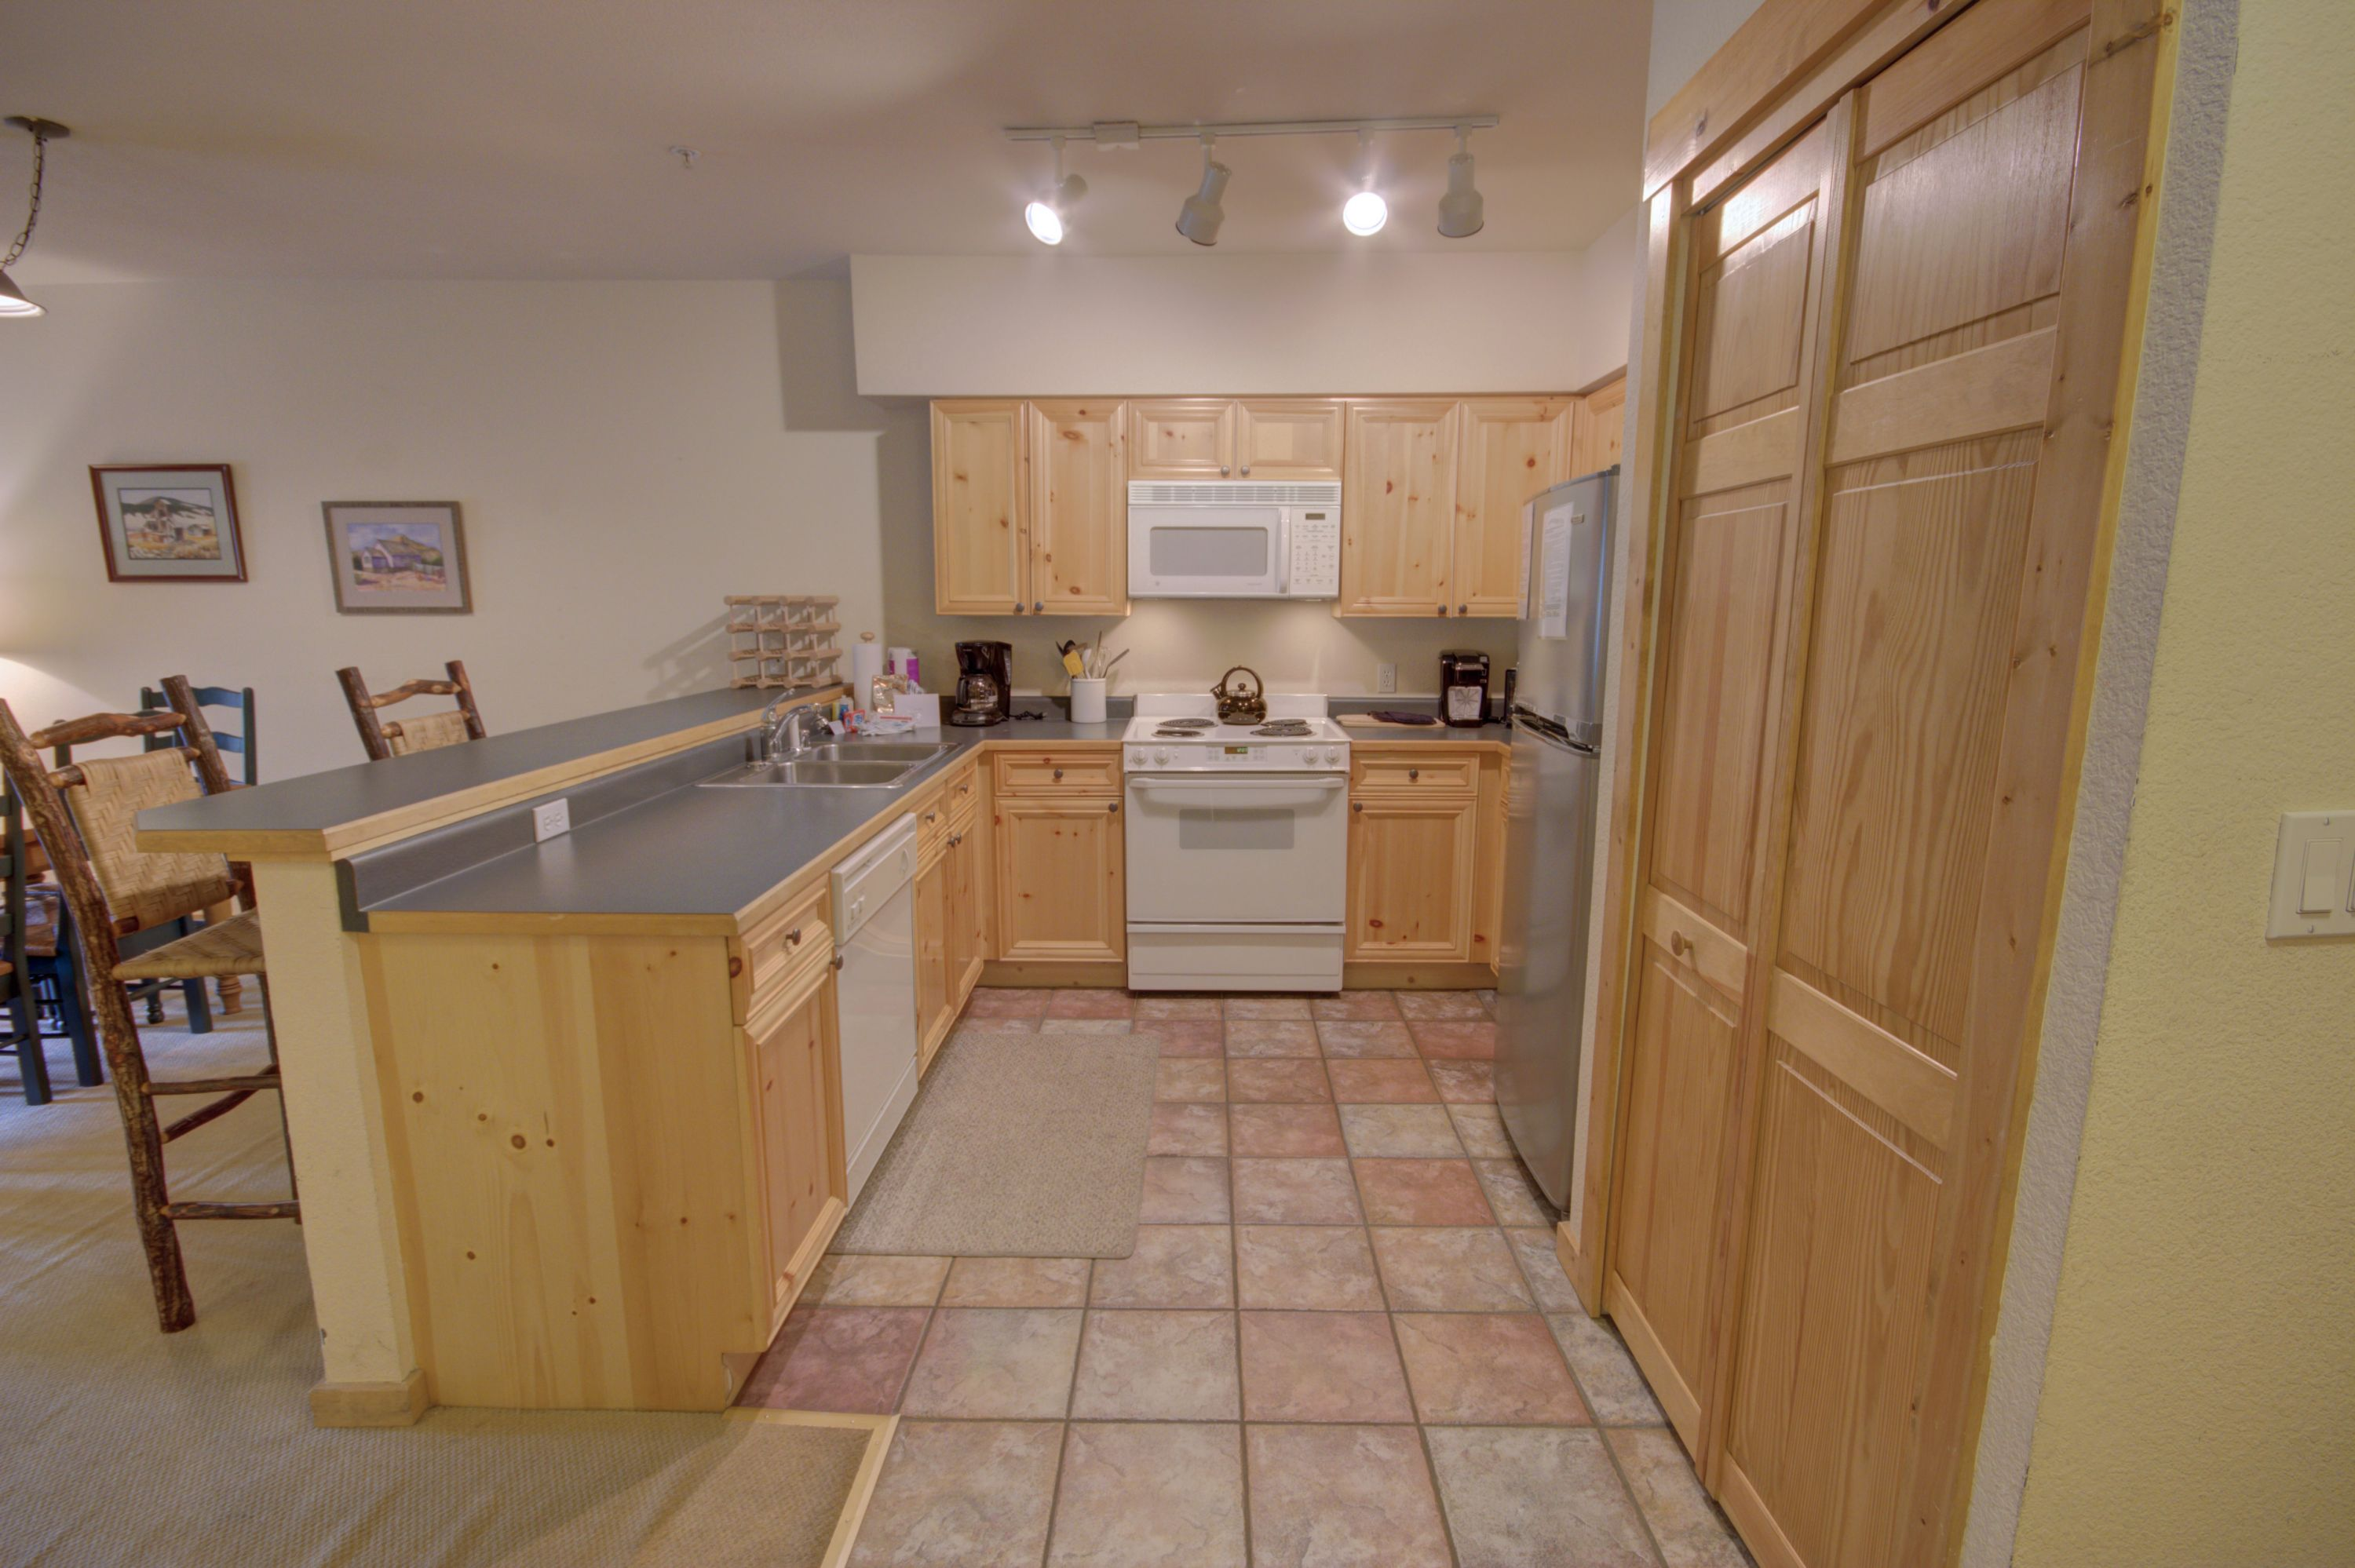 Nice open kitchen perfect for making you favorite foods